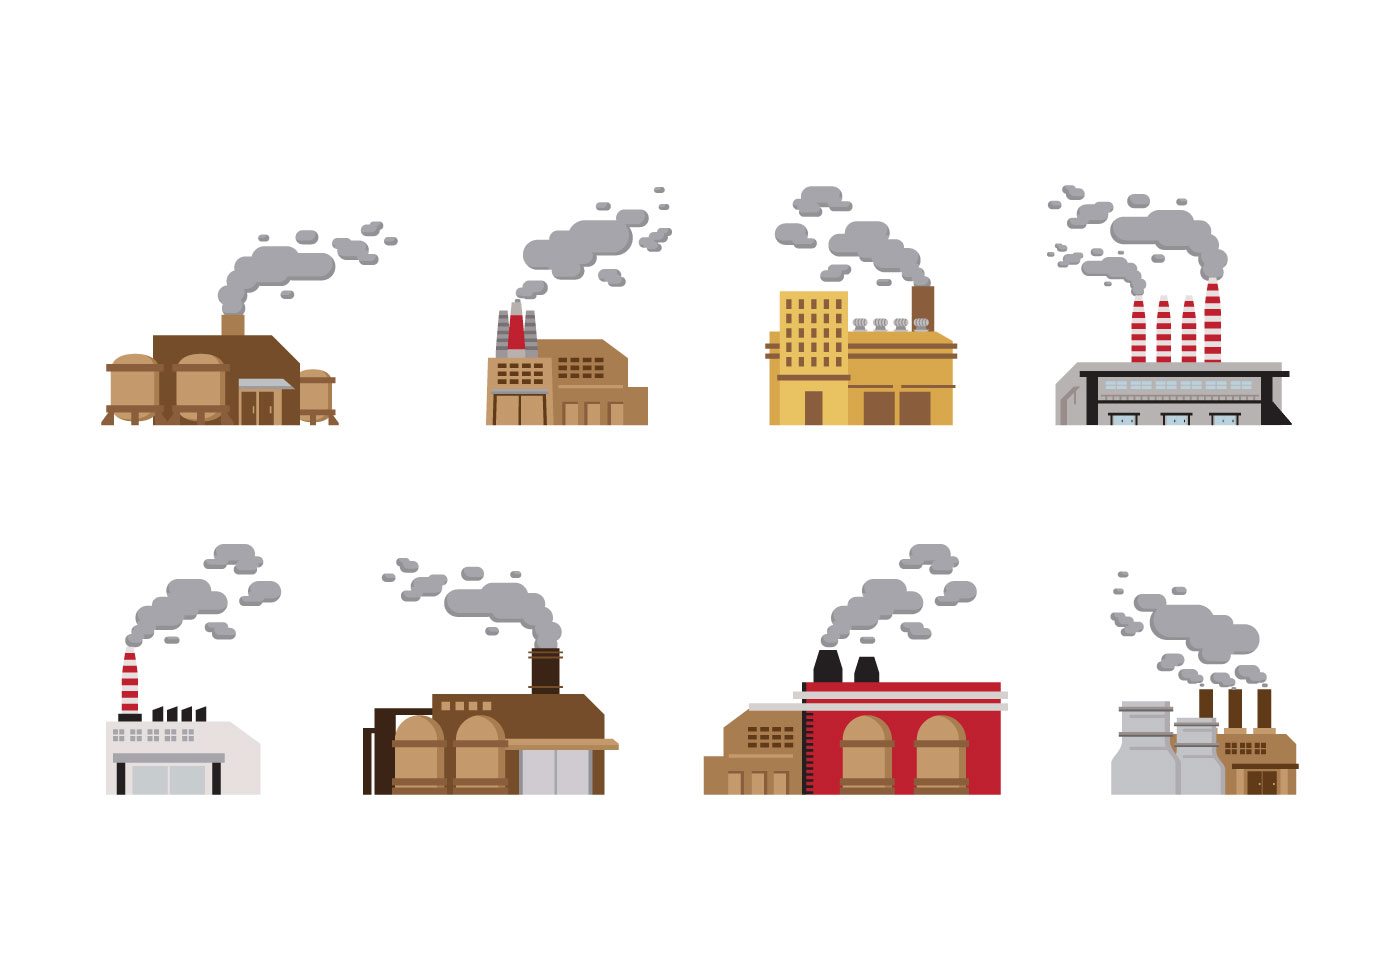 smoke stack industry vector download free vector art stock graphics images. Black Bedroom Furniture Sets. Home Design Ideas